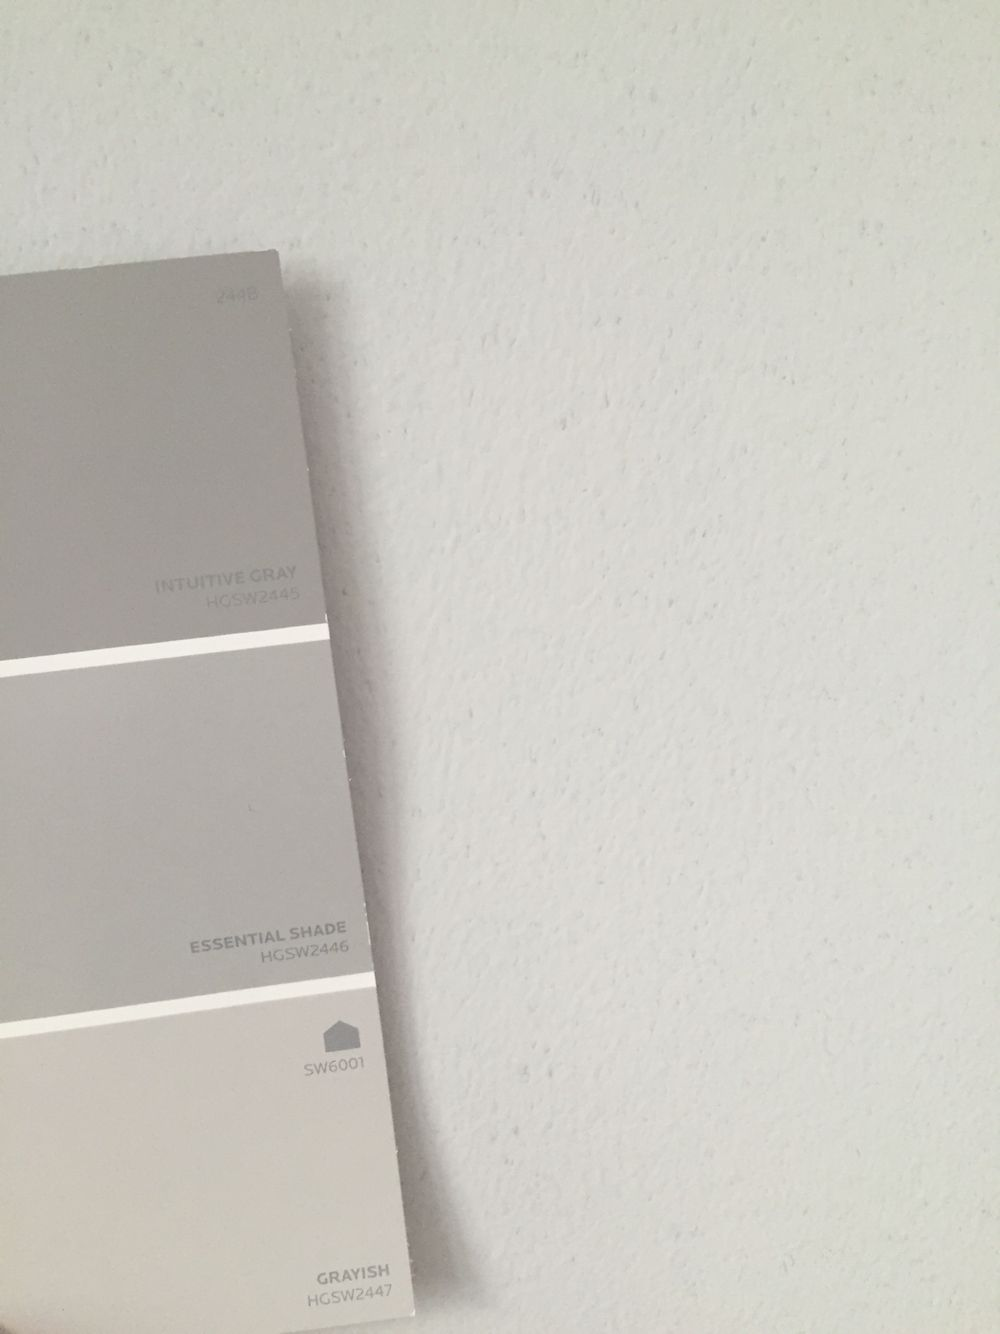 Sherwin Williams Grayish Finally A Gray That Doesn T Look Purple On The Walls Guest Room Paint Interior Paint Colors Schemes Paint Colors For Home